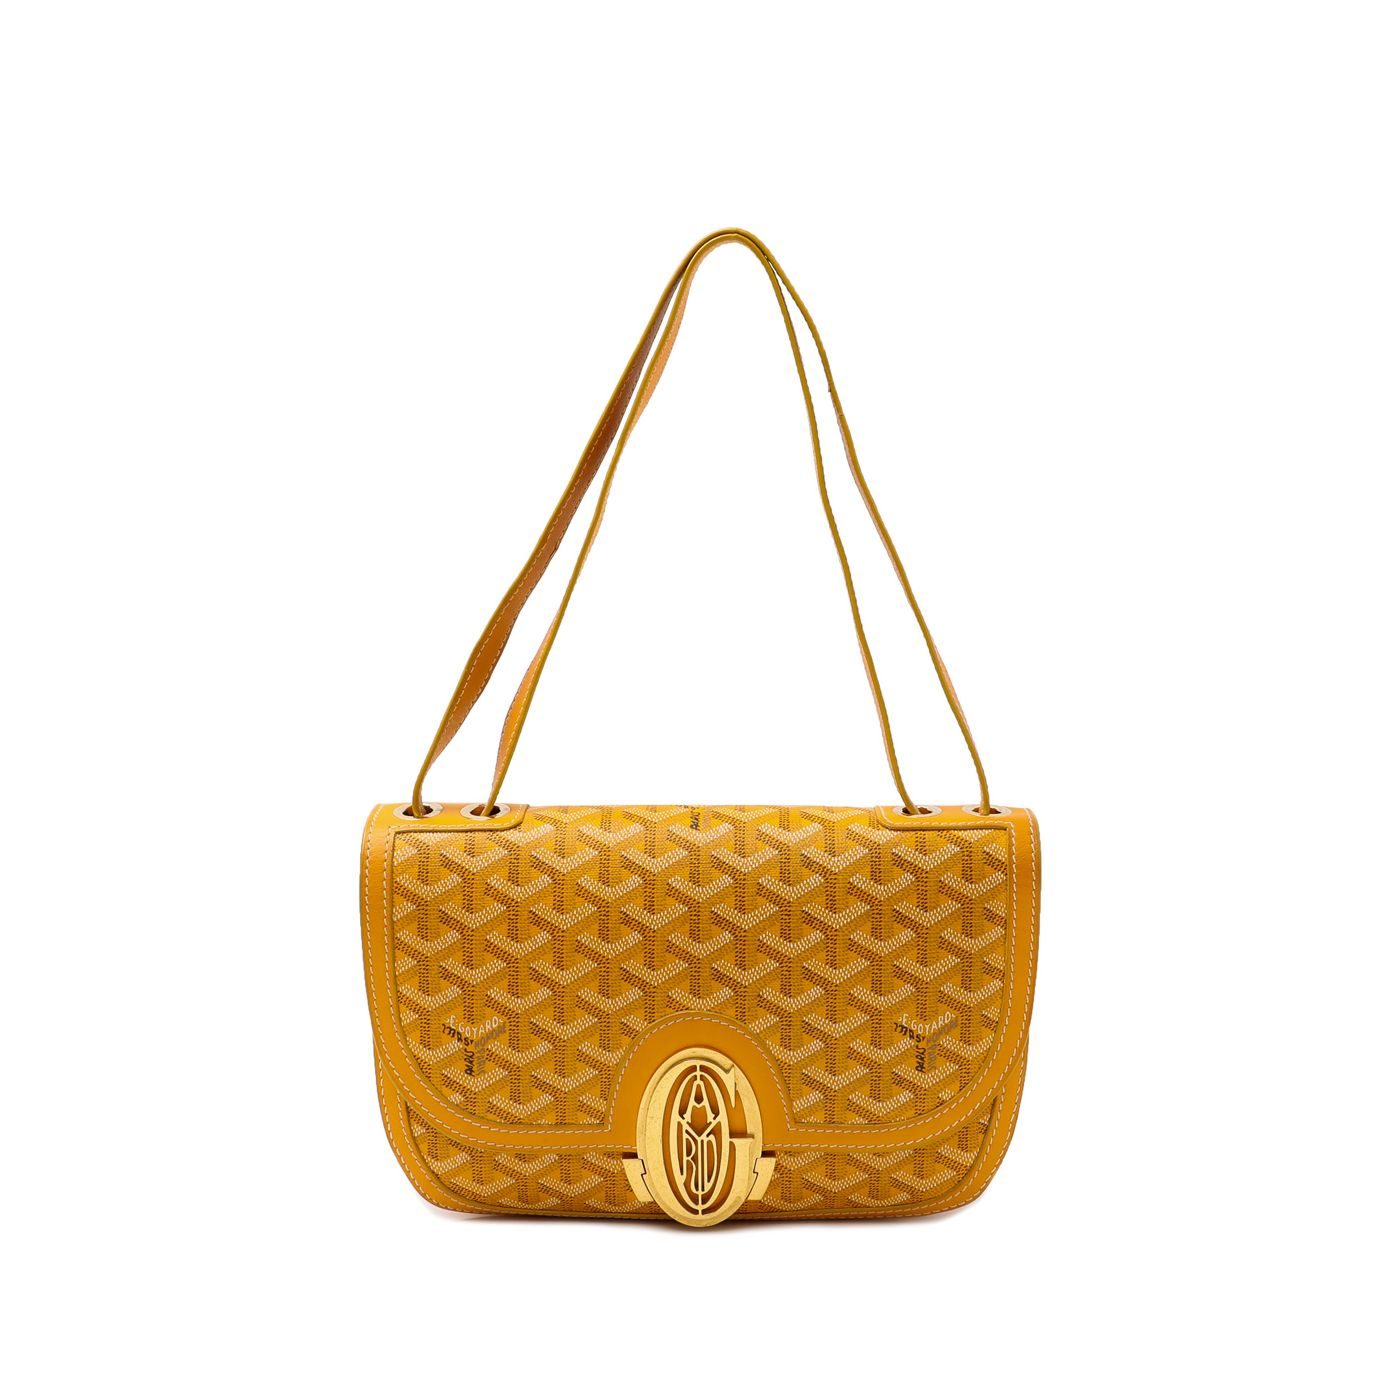 Goyard Yellow 233 Flap Bag